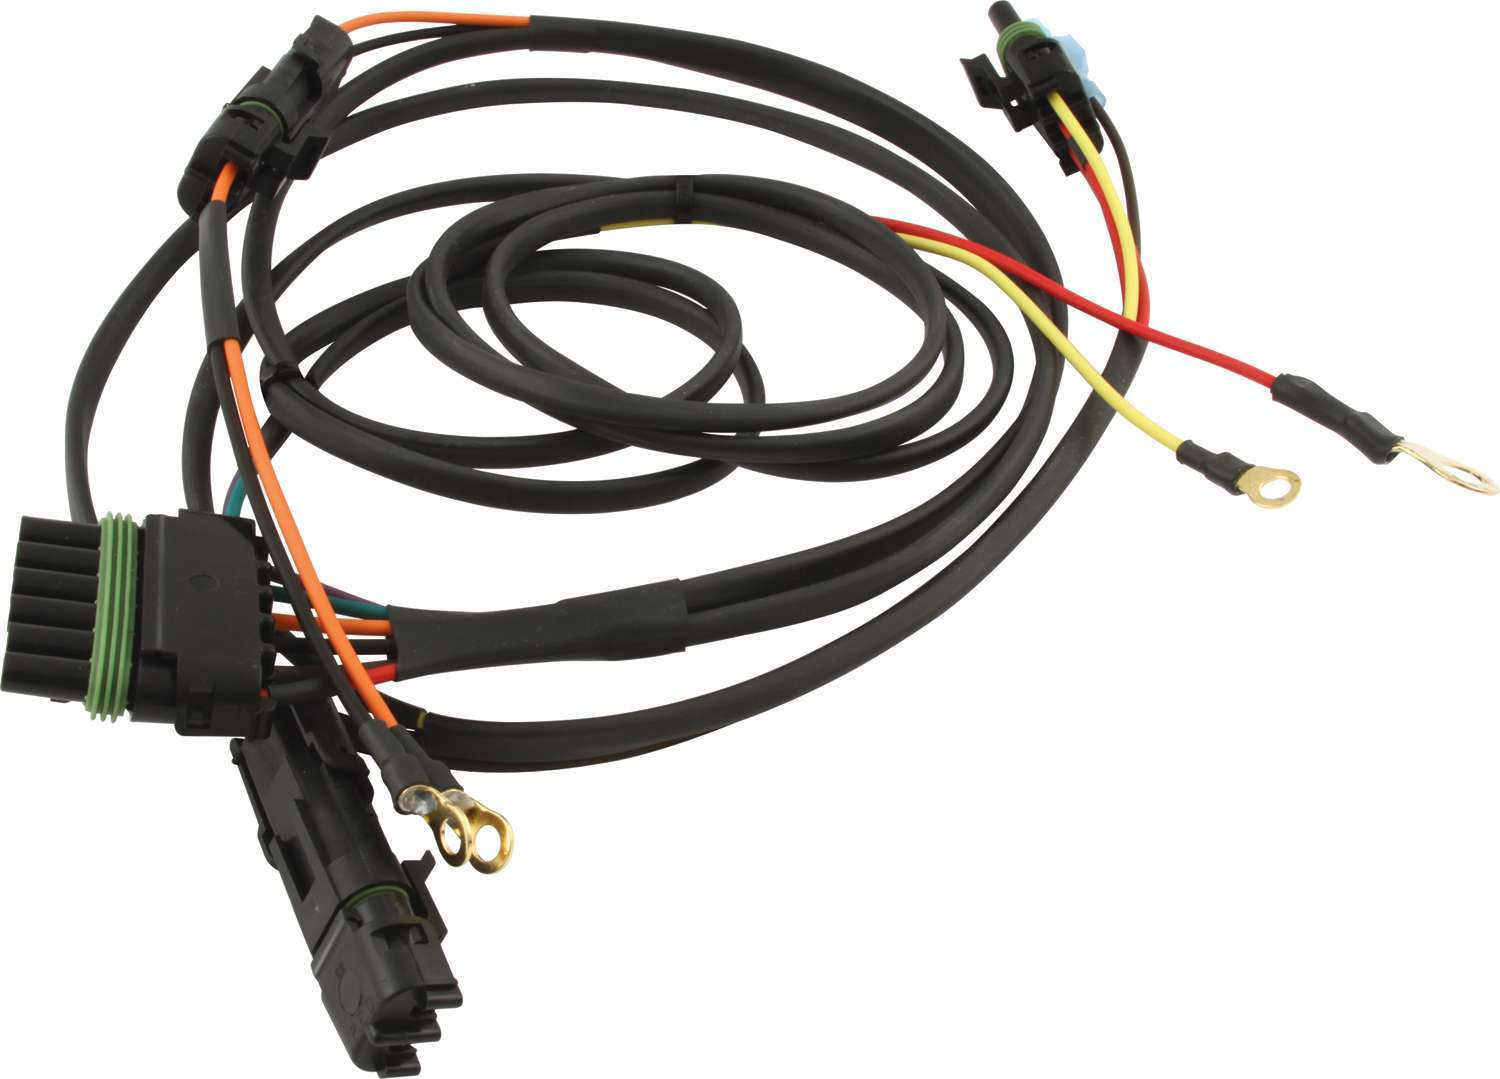 50 2031 Wiring Harness Wire Cable